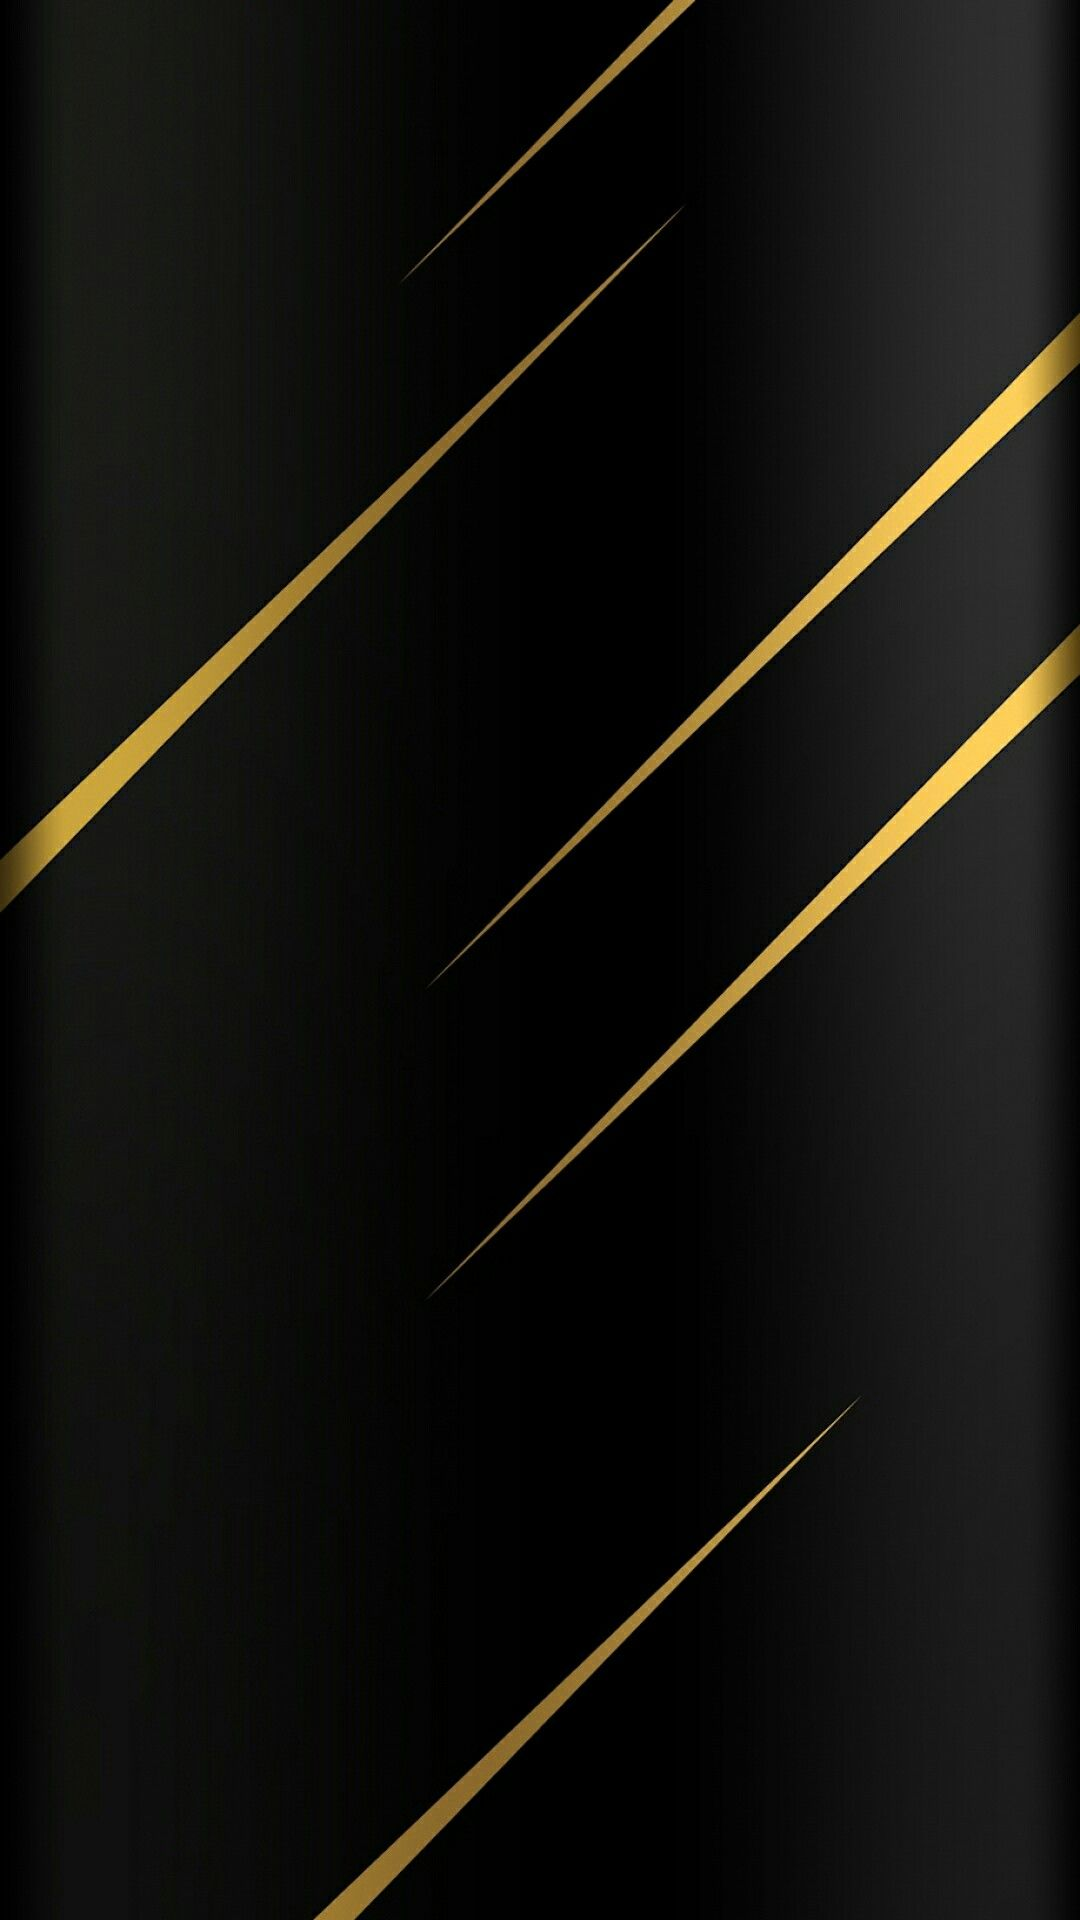 Abstract Gold Wallpaper Phone Black Wallpaper For Mobile Black